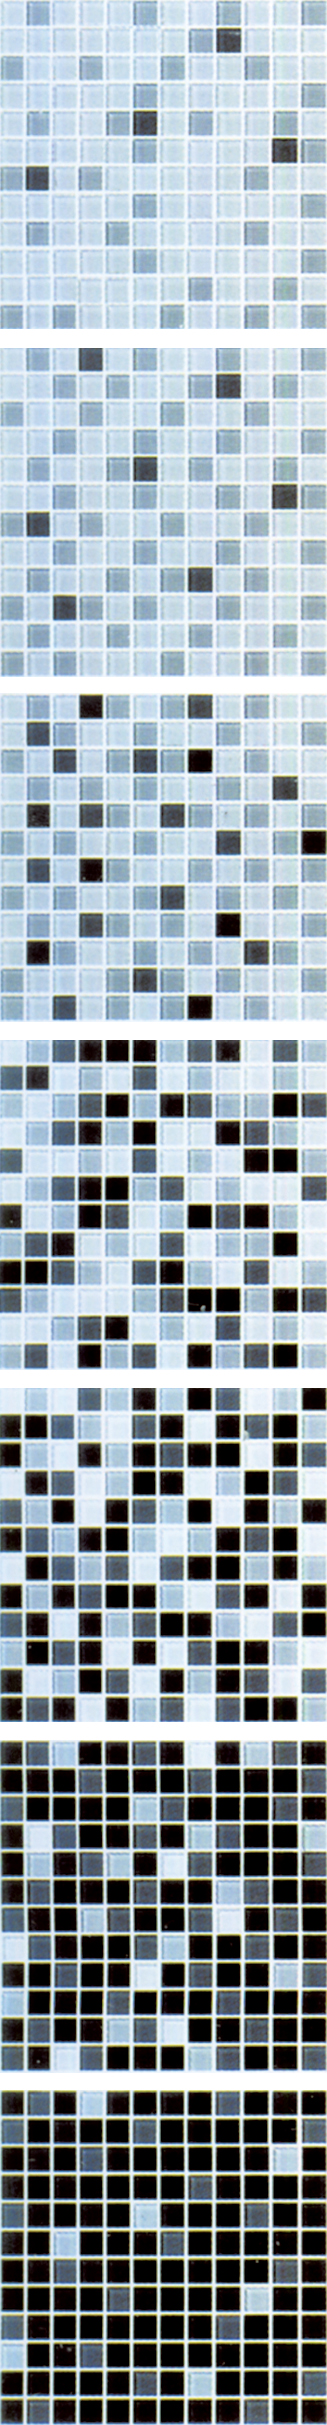 Gradual Change Glass Mosaic Tile